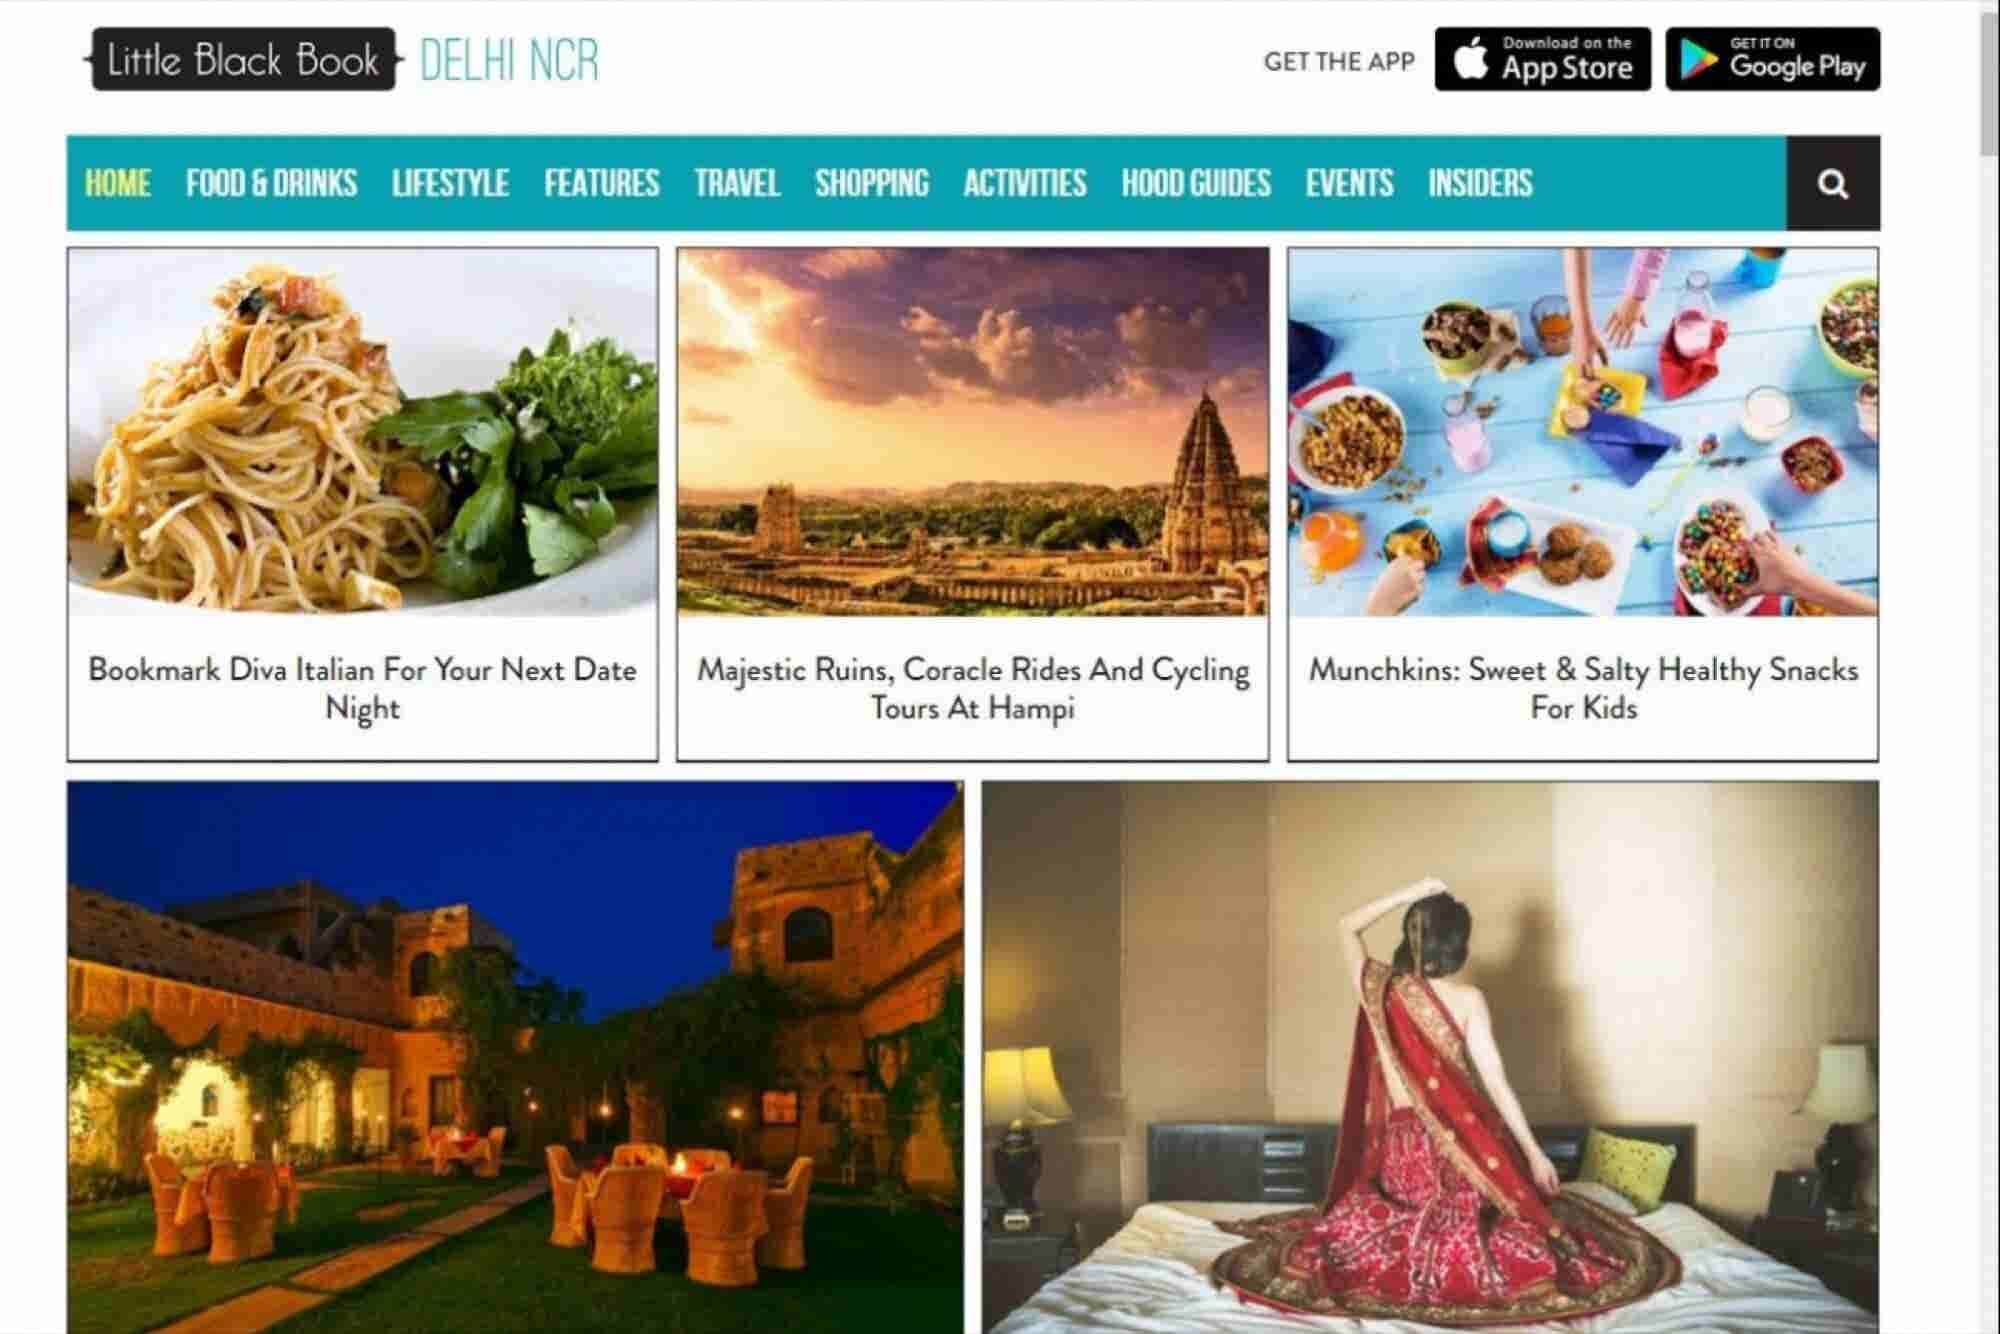 Growing At The Rate of 800%, Little Black Book Raises Another $1.2 Mn From IDG Ventures And IAN